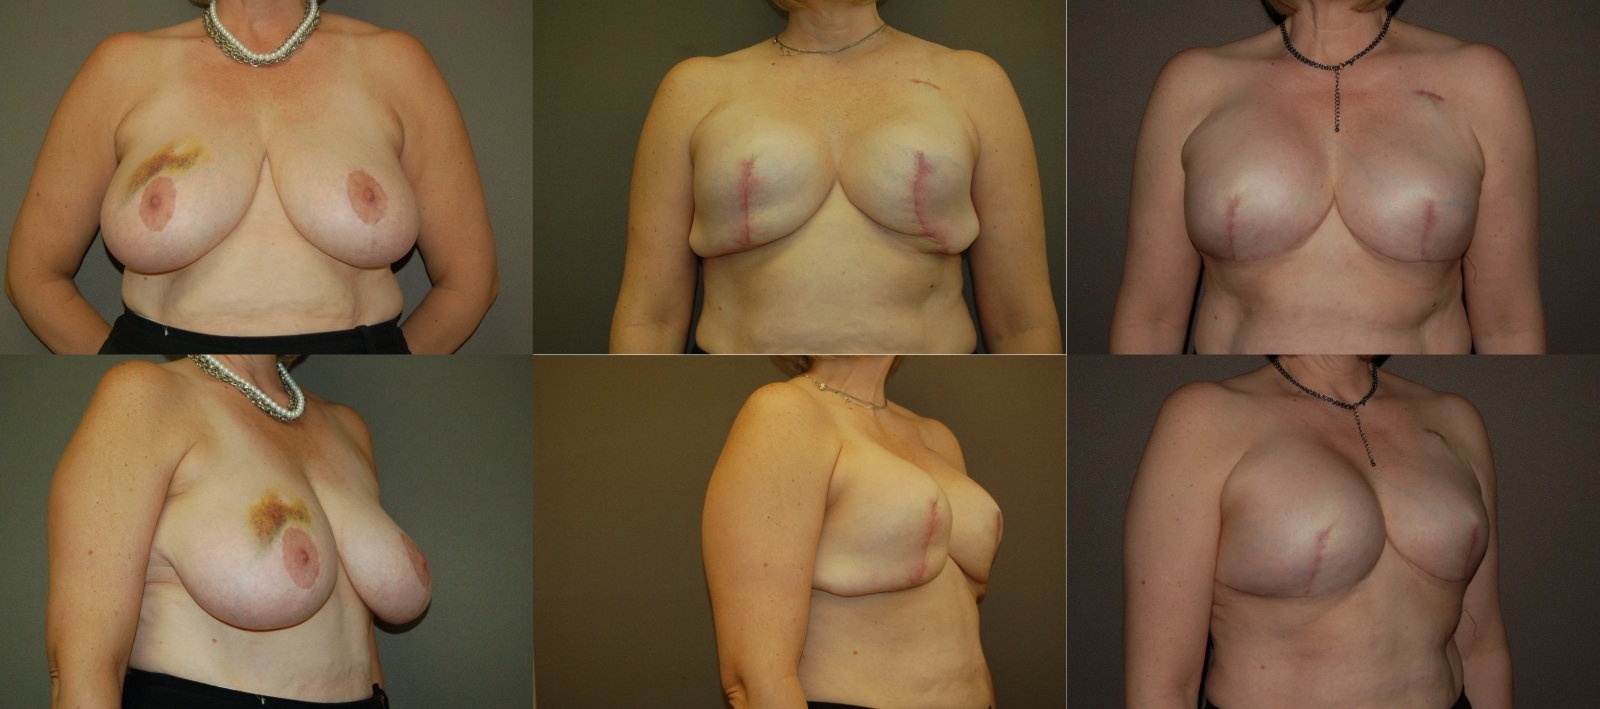 Louisville ky boob implants — photo 4